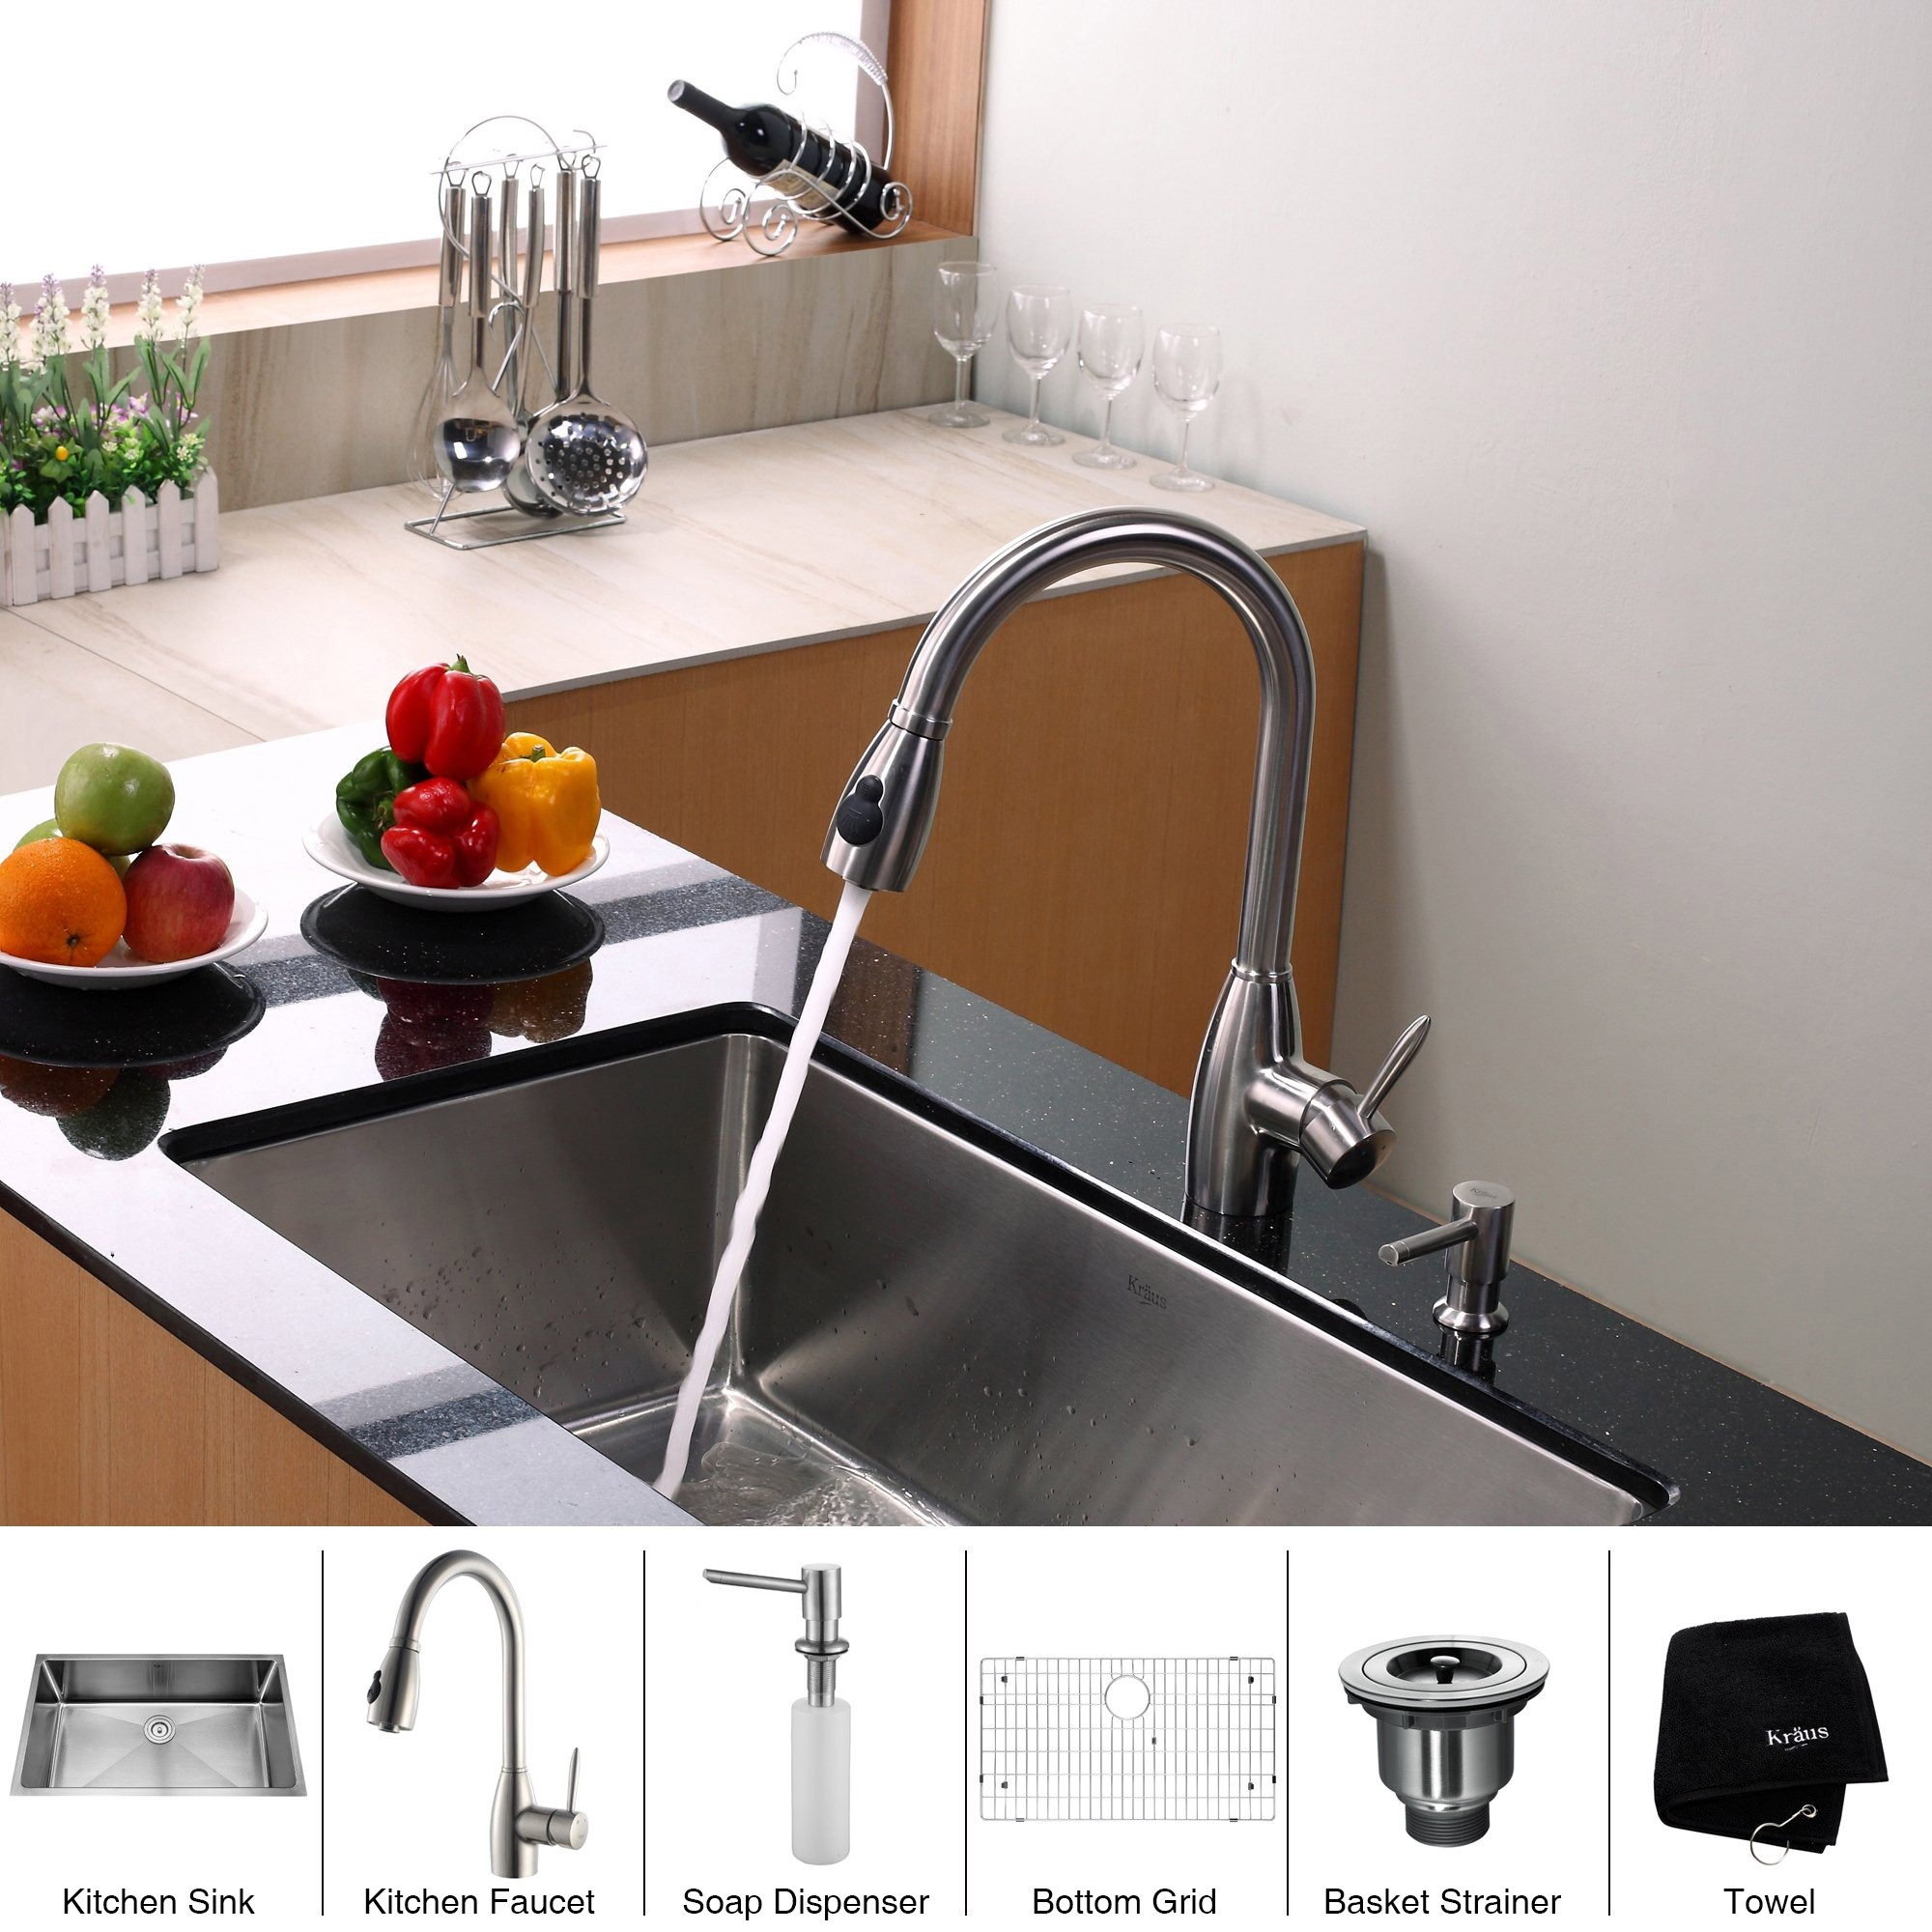 Ideas, stainless steel kitchen sink combination kraususa within proportions 2000 x 2000  .